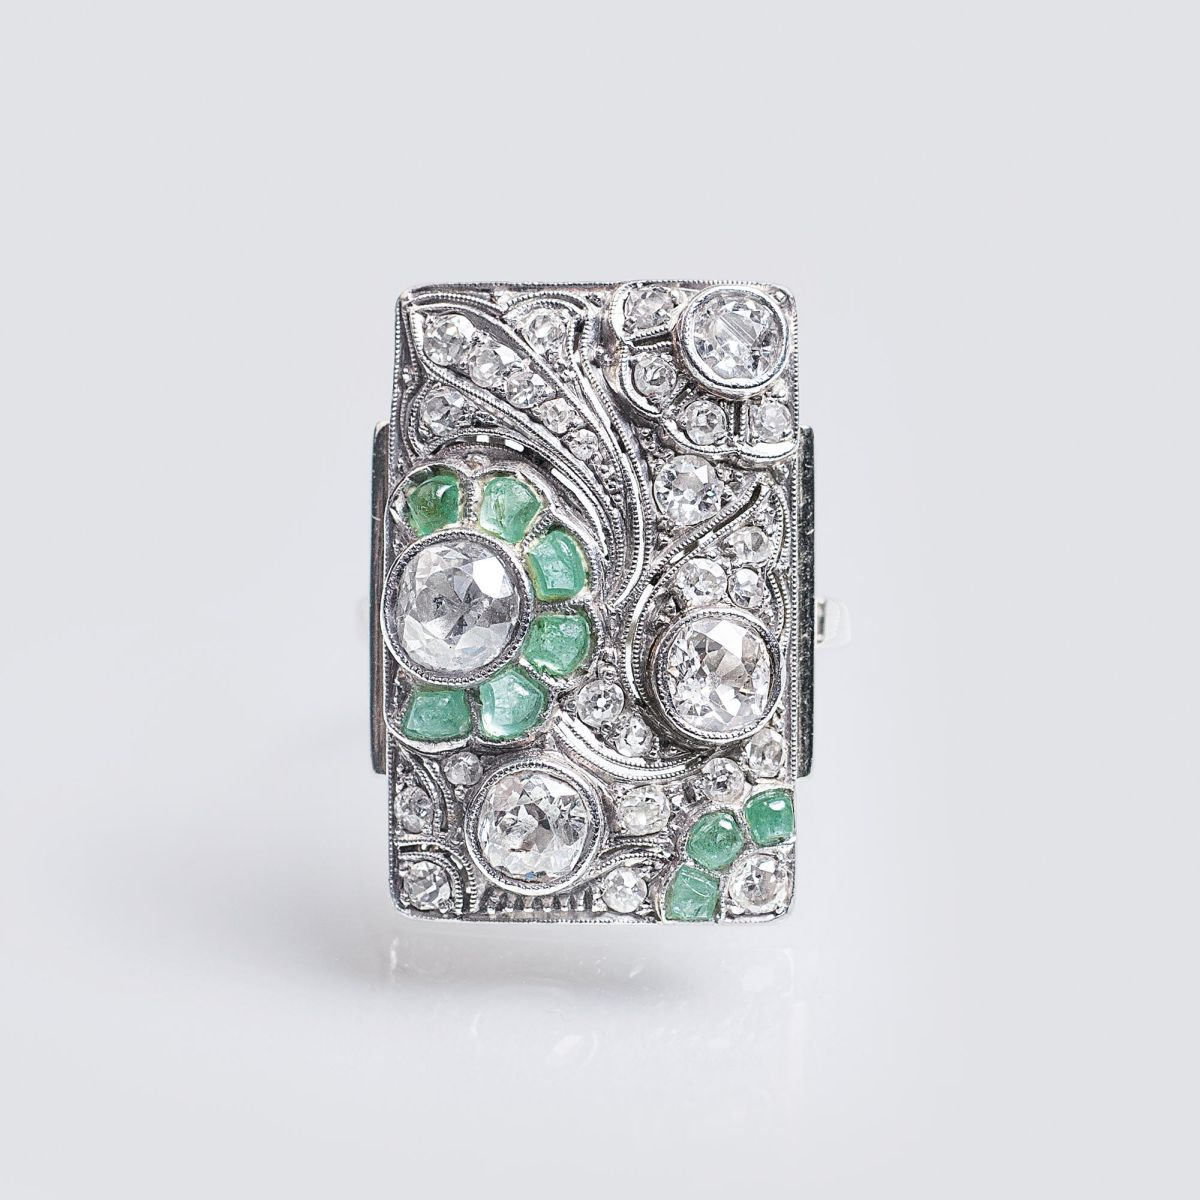 An Art-déco Ring with Old Cut Diamonds and Emeralds